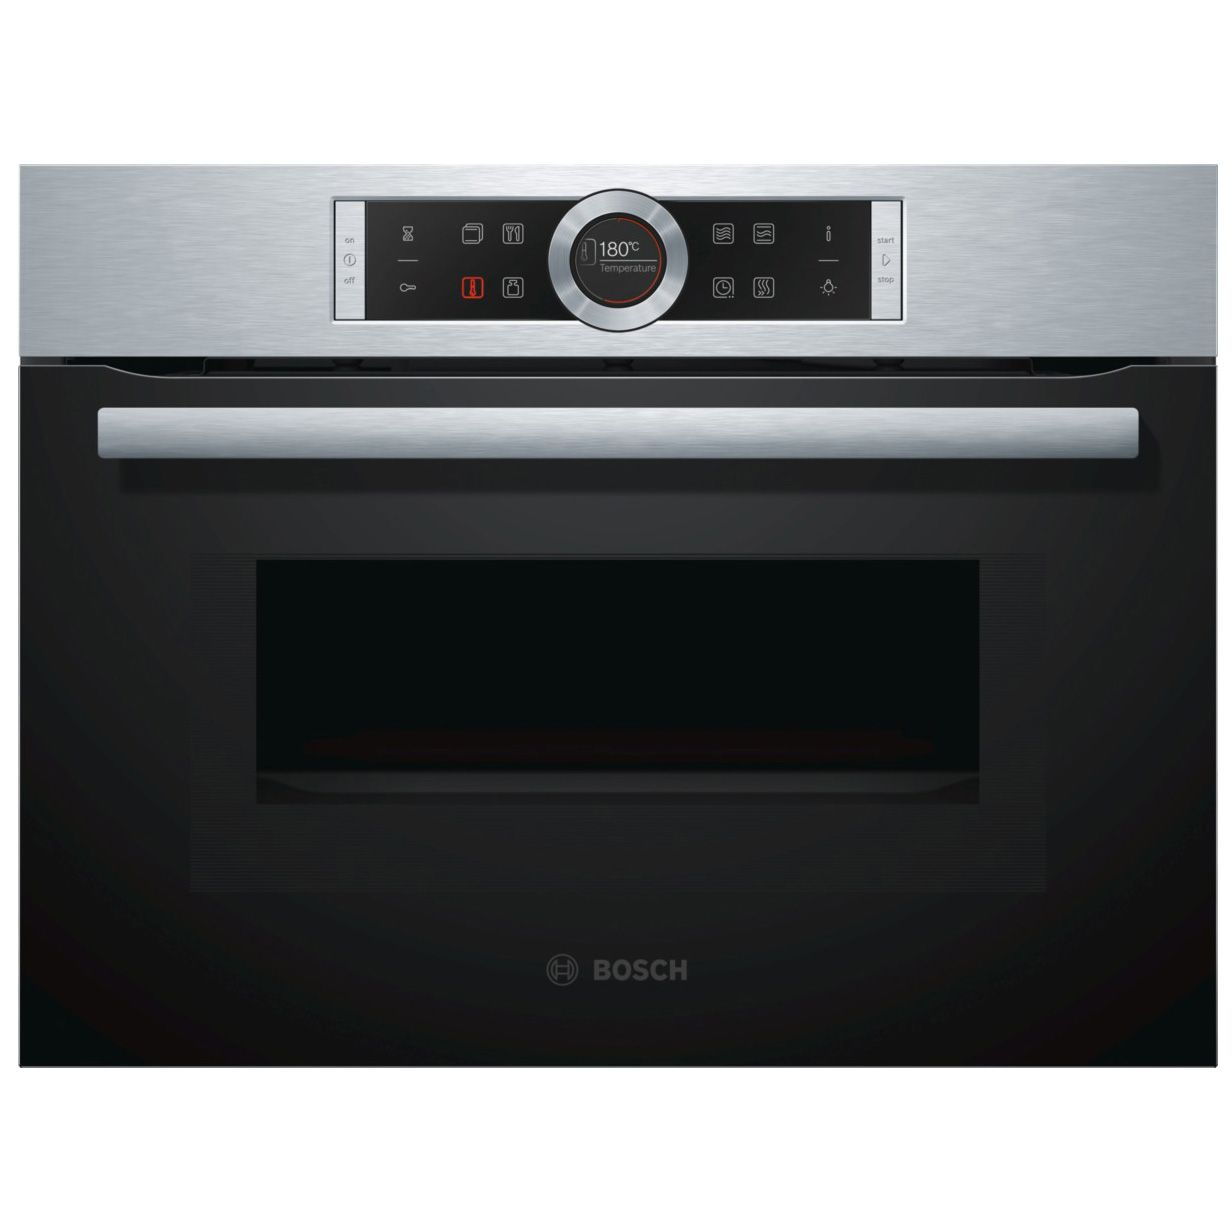 Bosch Cmg633bs1b Brushed Steel Electric Compact Oven With Microwave